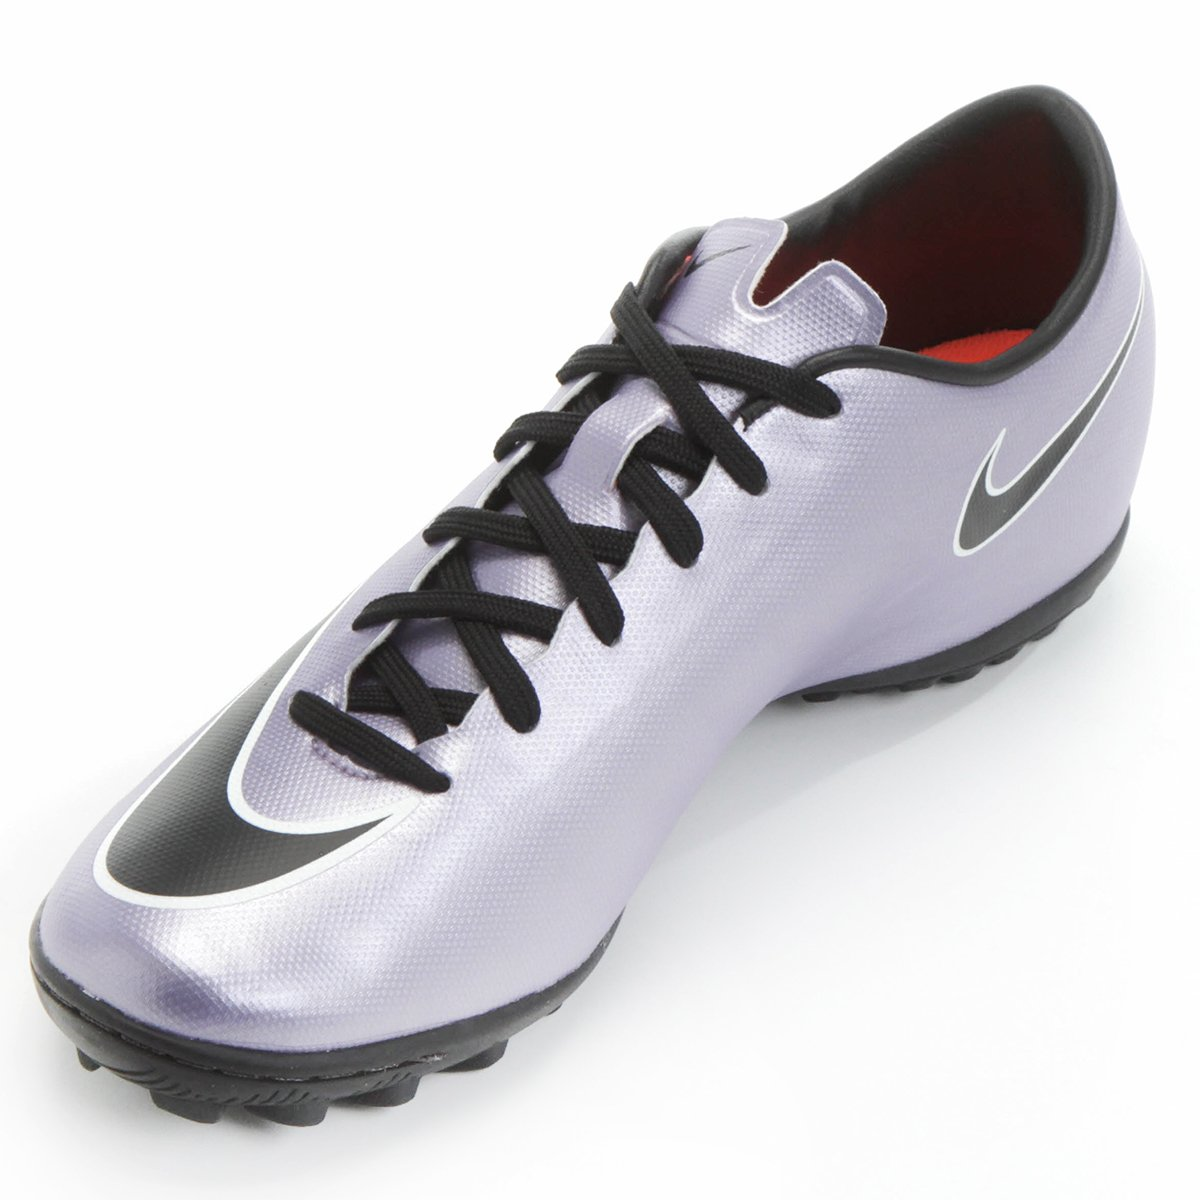 Chuteira Society Nike Mercurial Victory 5 TF - Compre Agora  cff949c751438